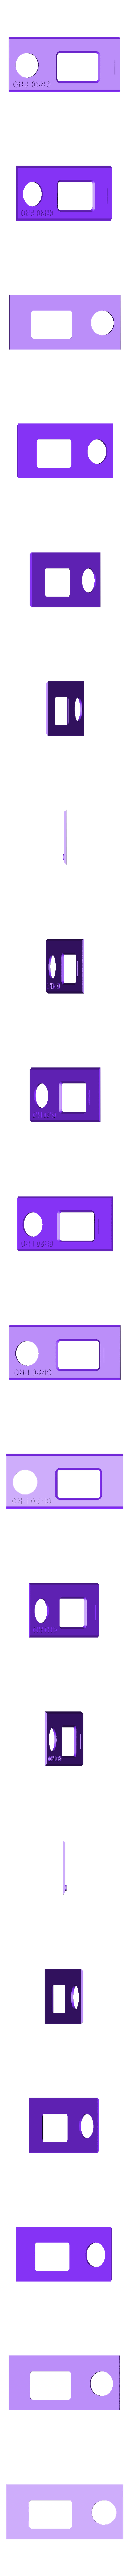 CR20PRO_LCD_COVER.stl Download free STL file CR20 / CR20 PRO LCD COVER • 3D printer object, GREGCAR_3DPrinting